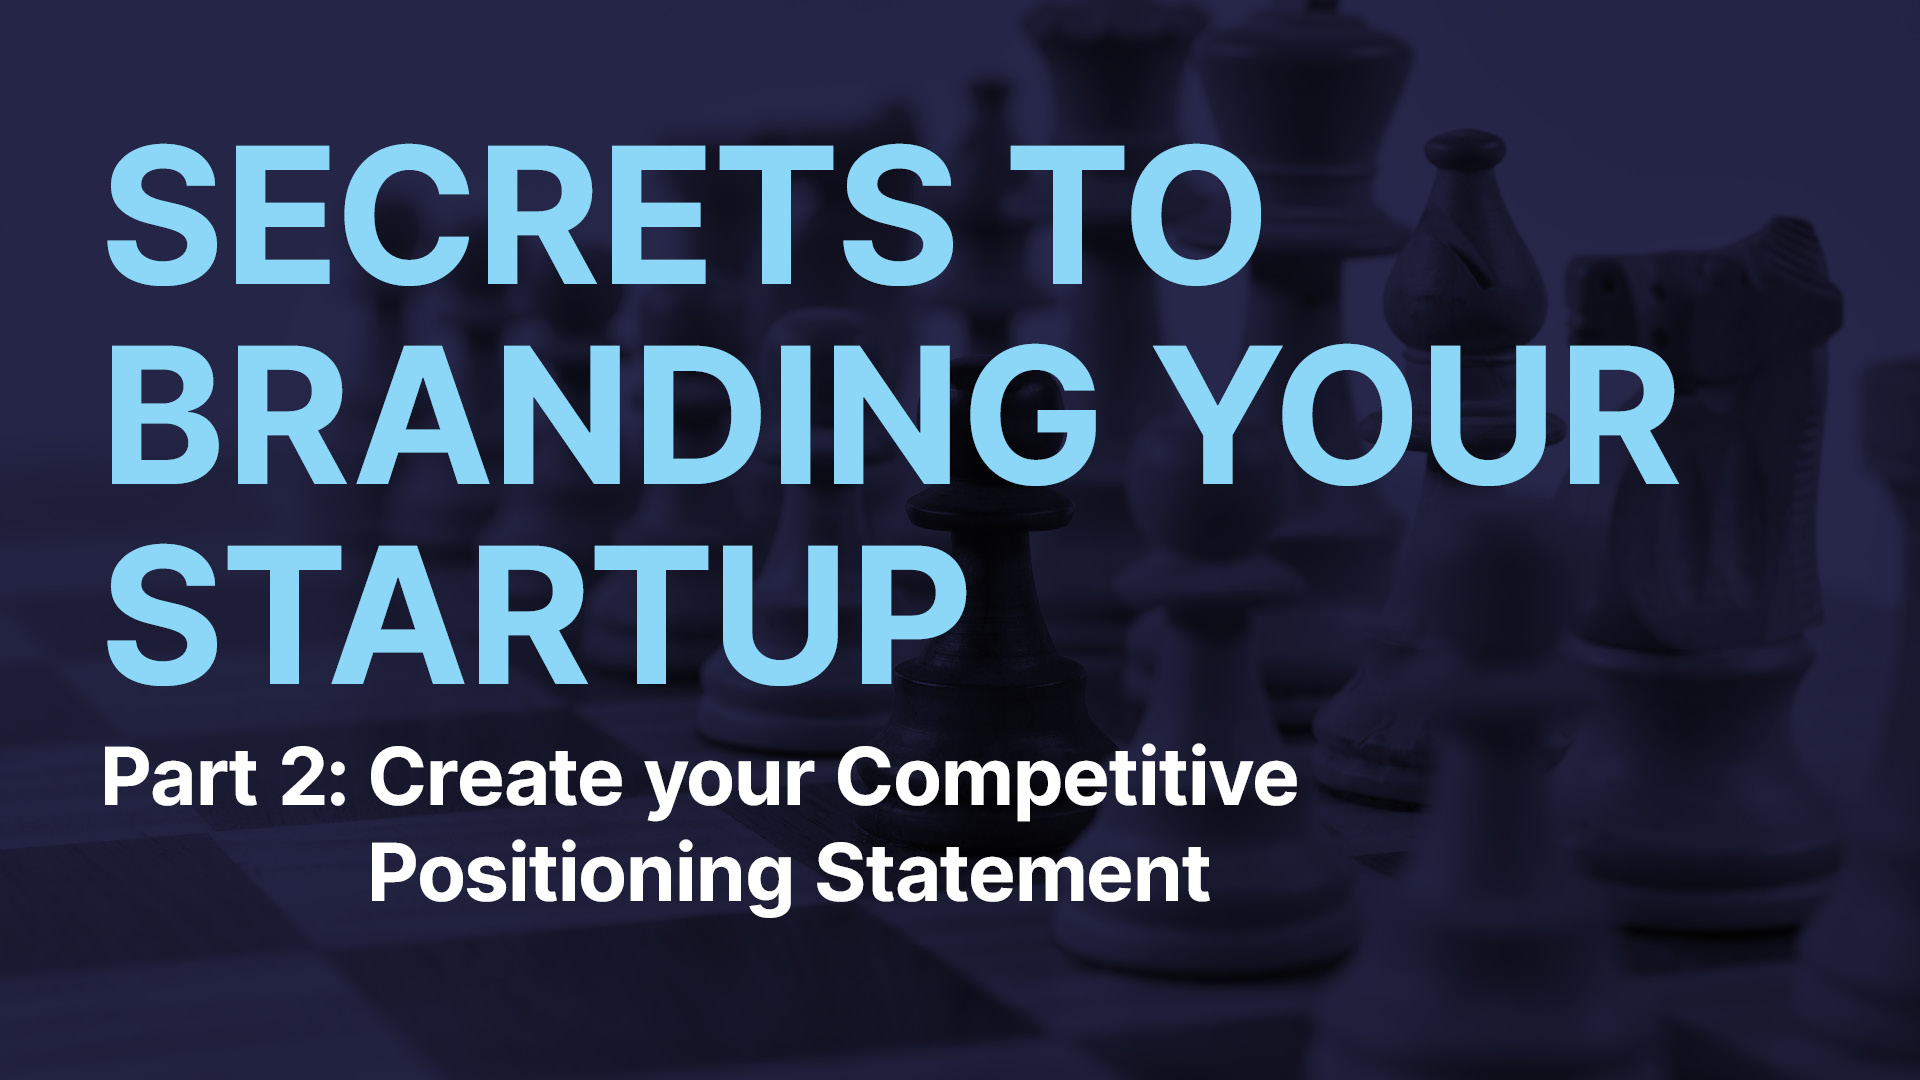 Secrets to Branding your Startup Part 2: Create your Competitive Positioning Statement